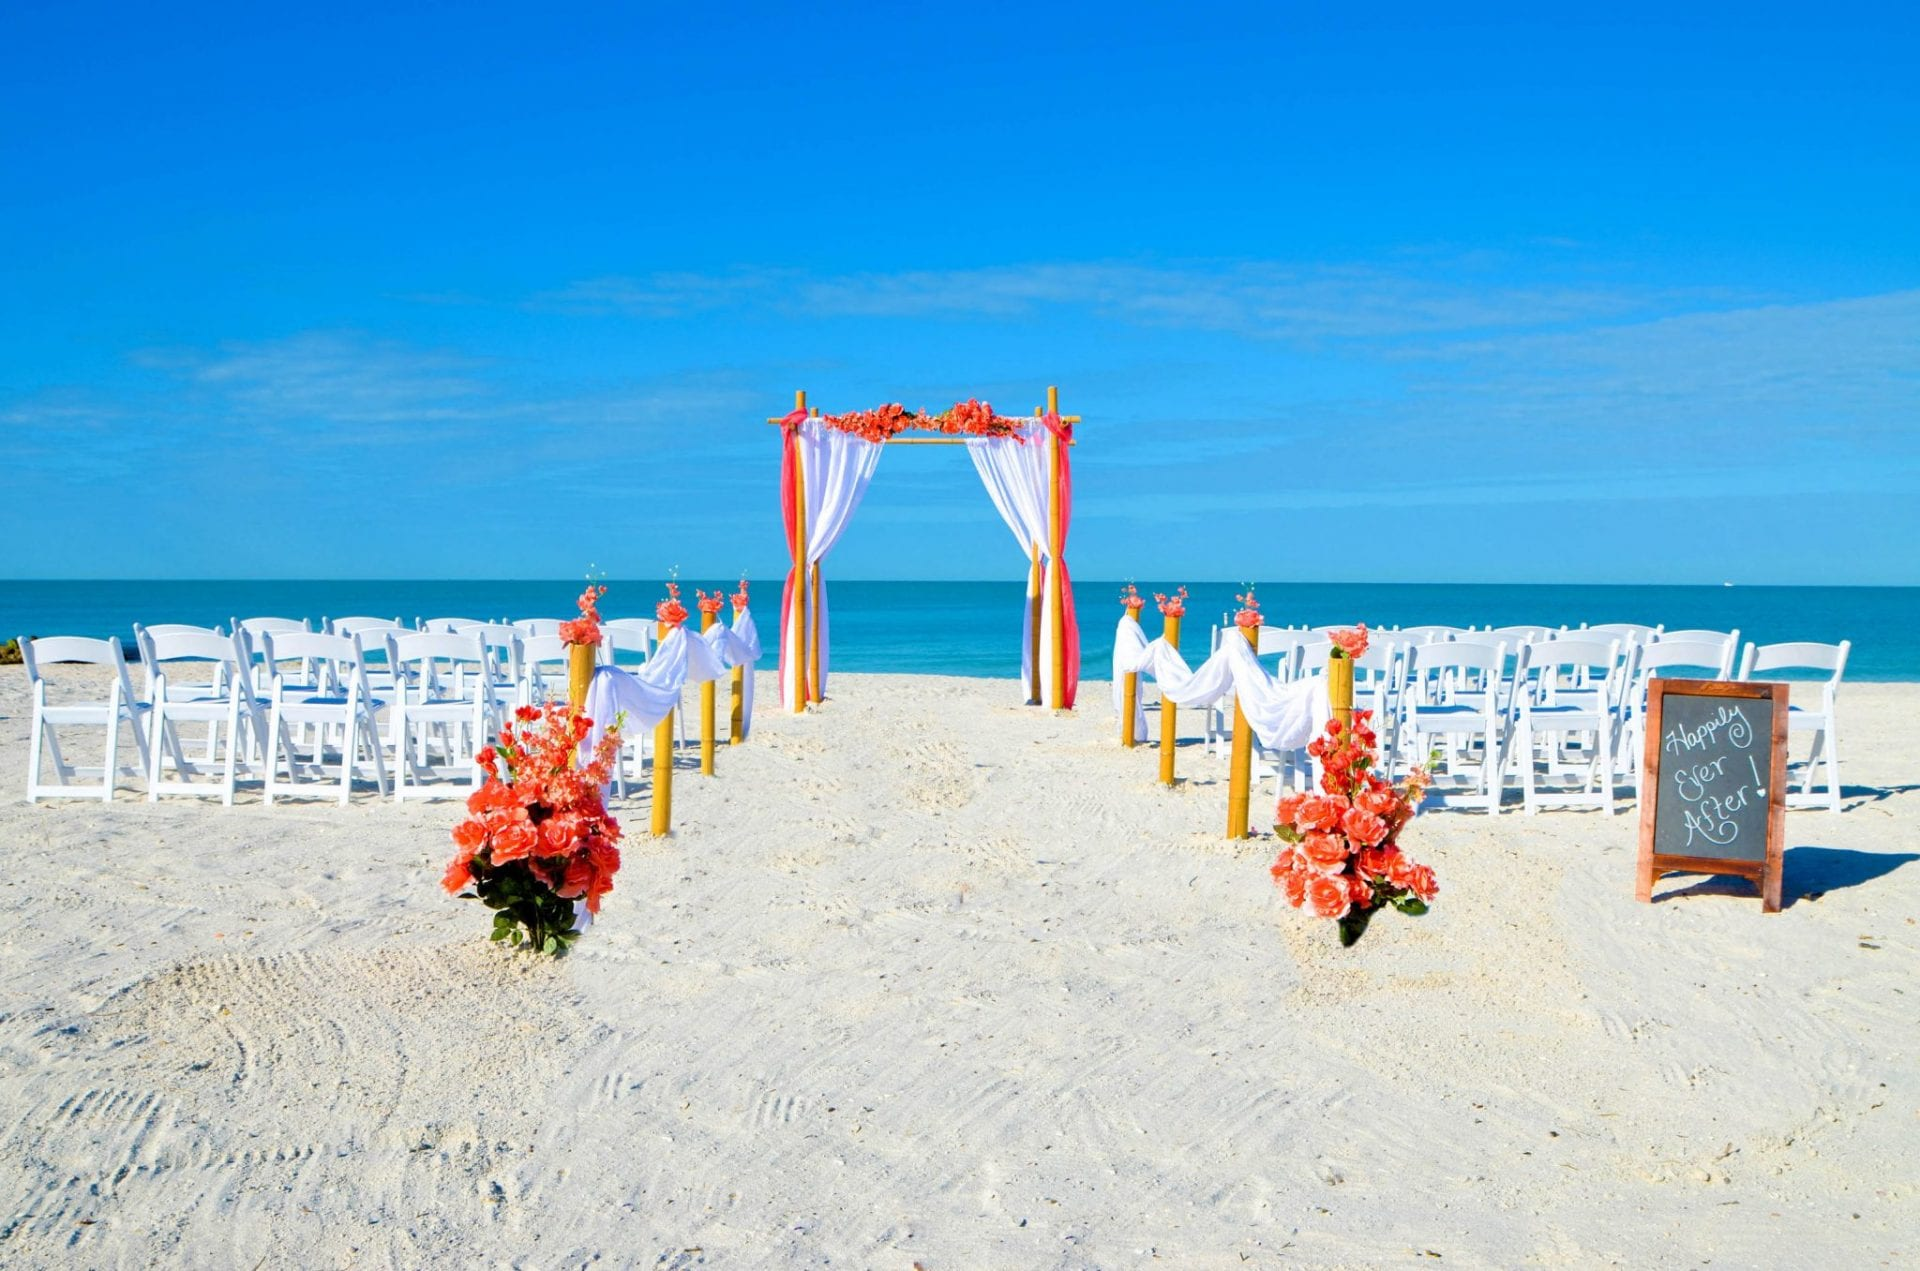 Coral color wedding arch on the beach with chairs